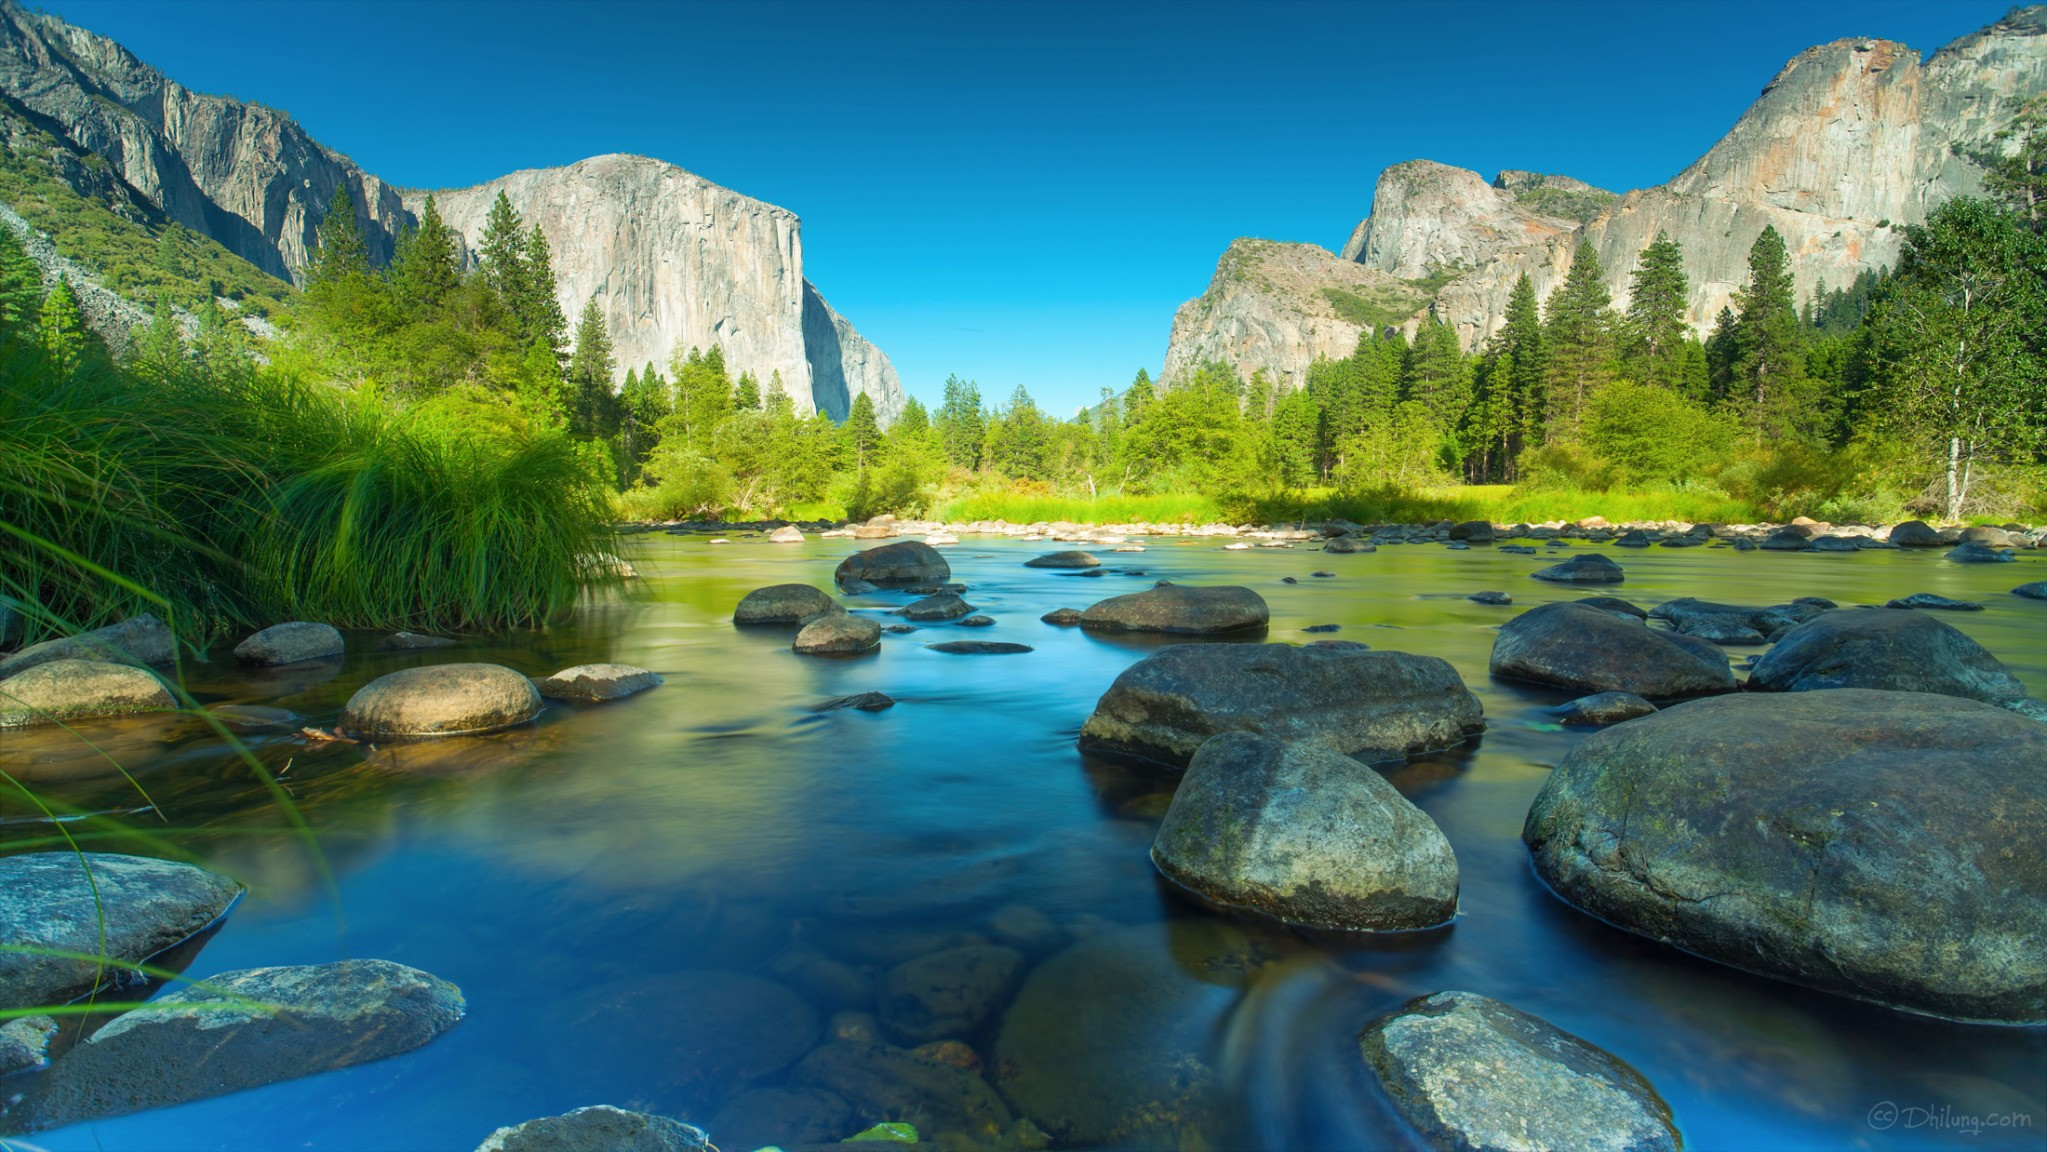 Yosemite nature wallpaper | AllWallpaper.in #7046 | PC | en